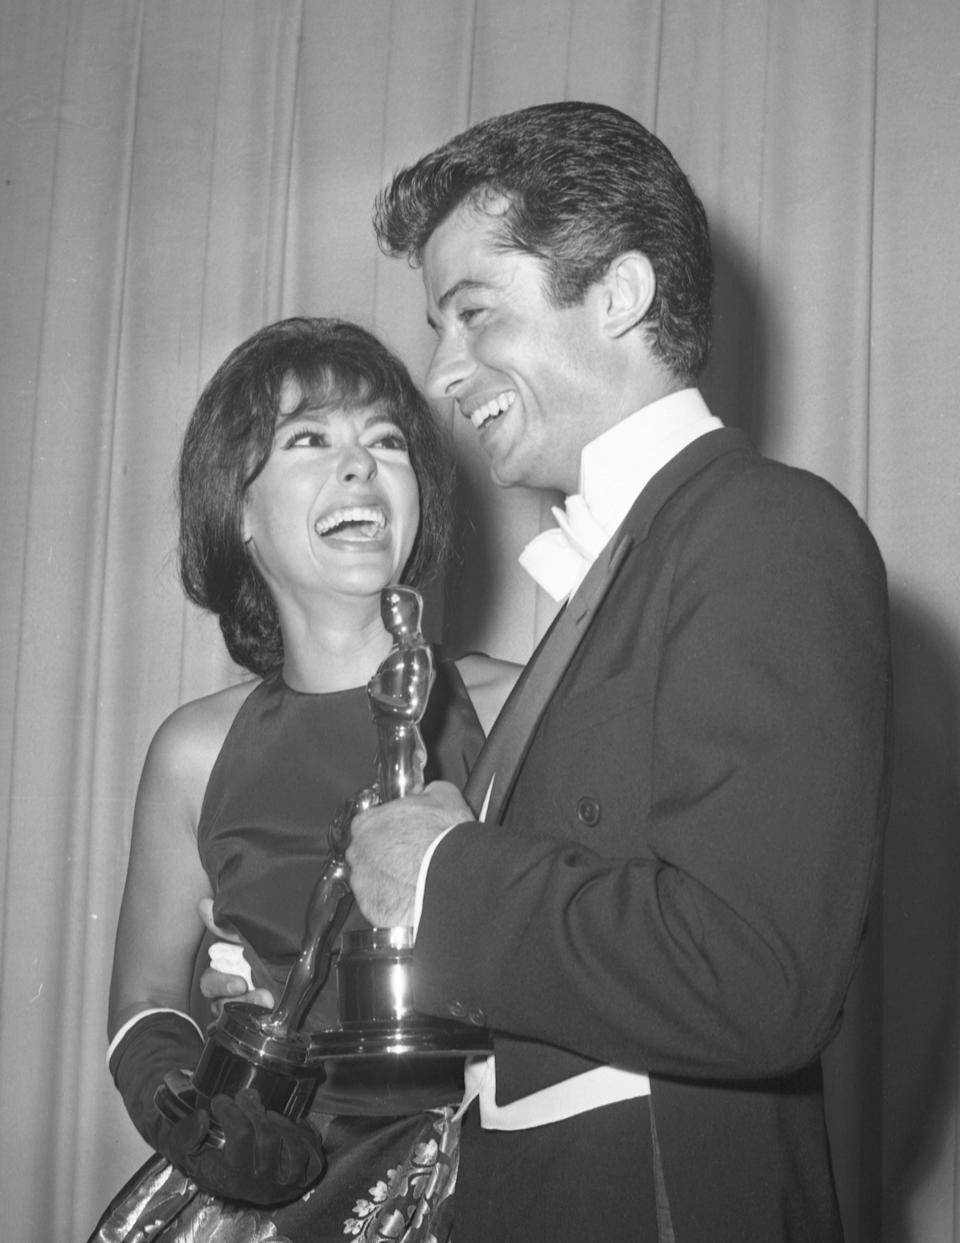 """Rita Moreno won the Oscar for best supporting actress for her role in """"West Side Story"""" in 1962. Co-star George Chakiris took home best supporting actor."""